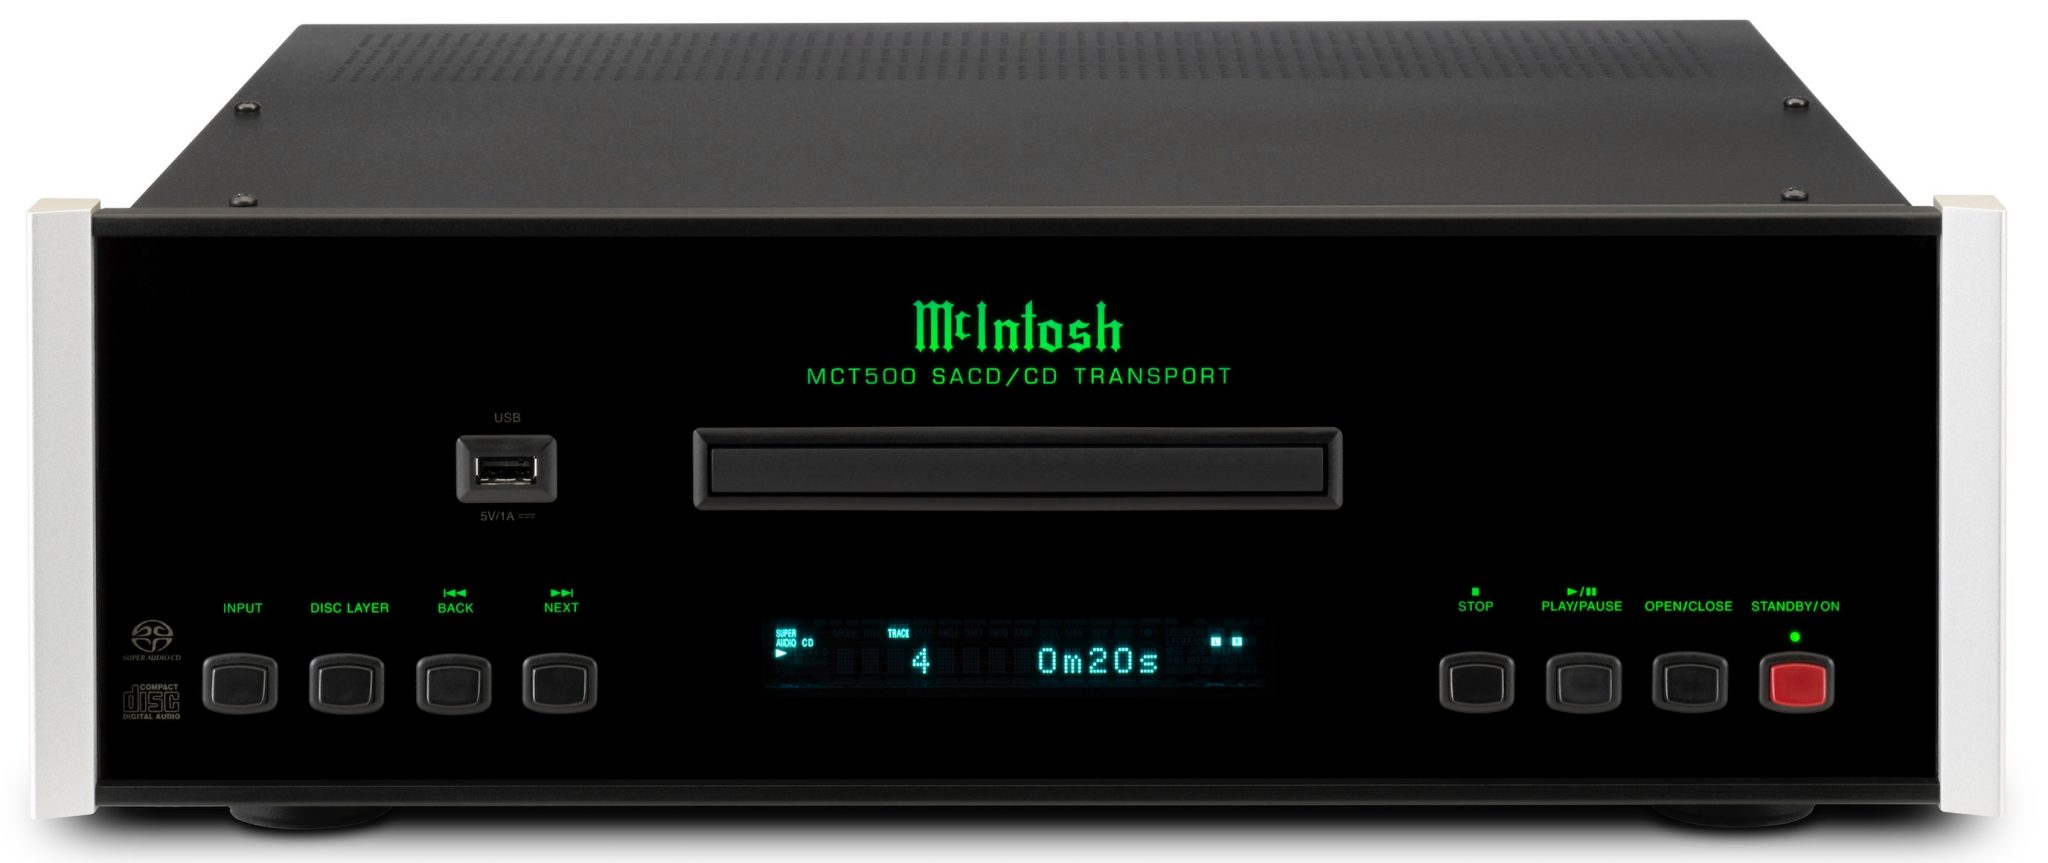 MCT500 SACD/CD transport From McIntosh